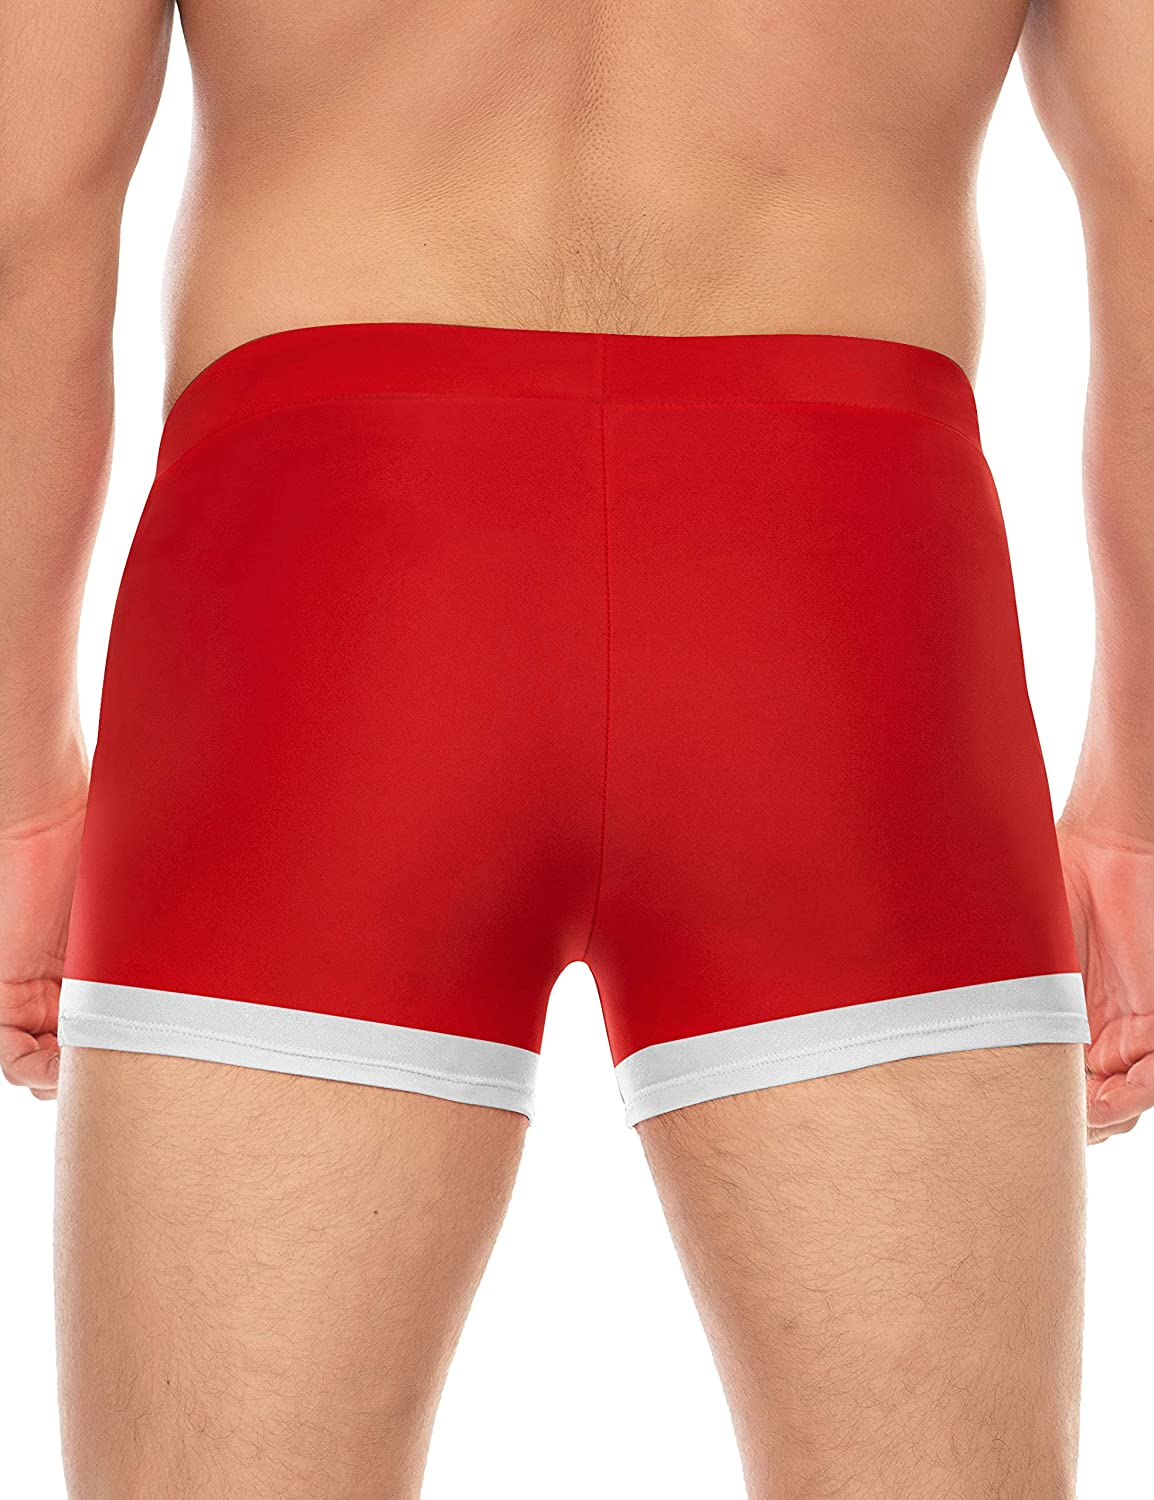 COOFANDY Mens Swim Trunk Swimwear Bathing Suit Board Short with Zipper Pocket